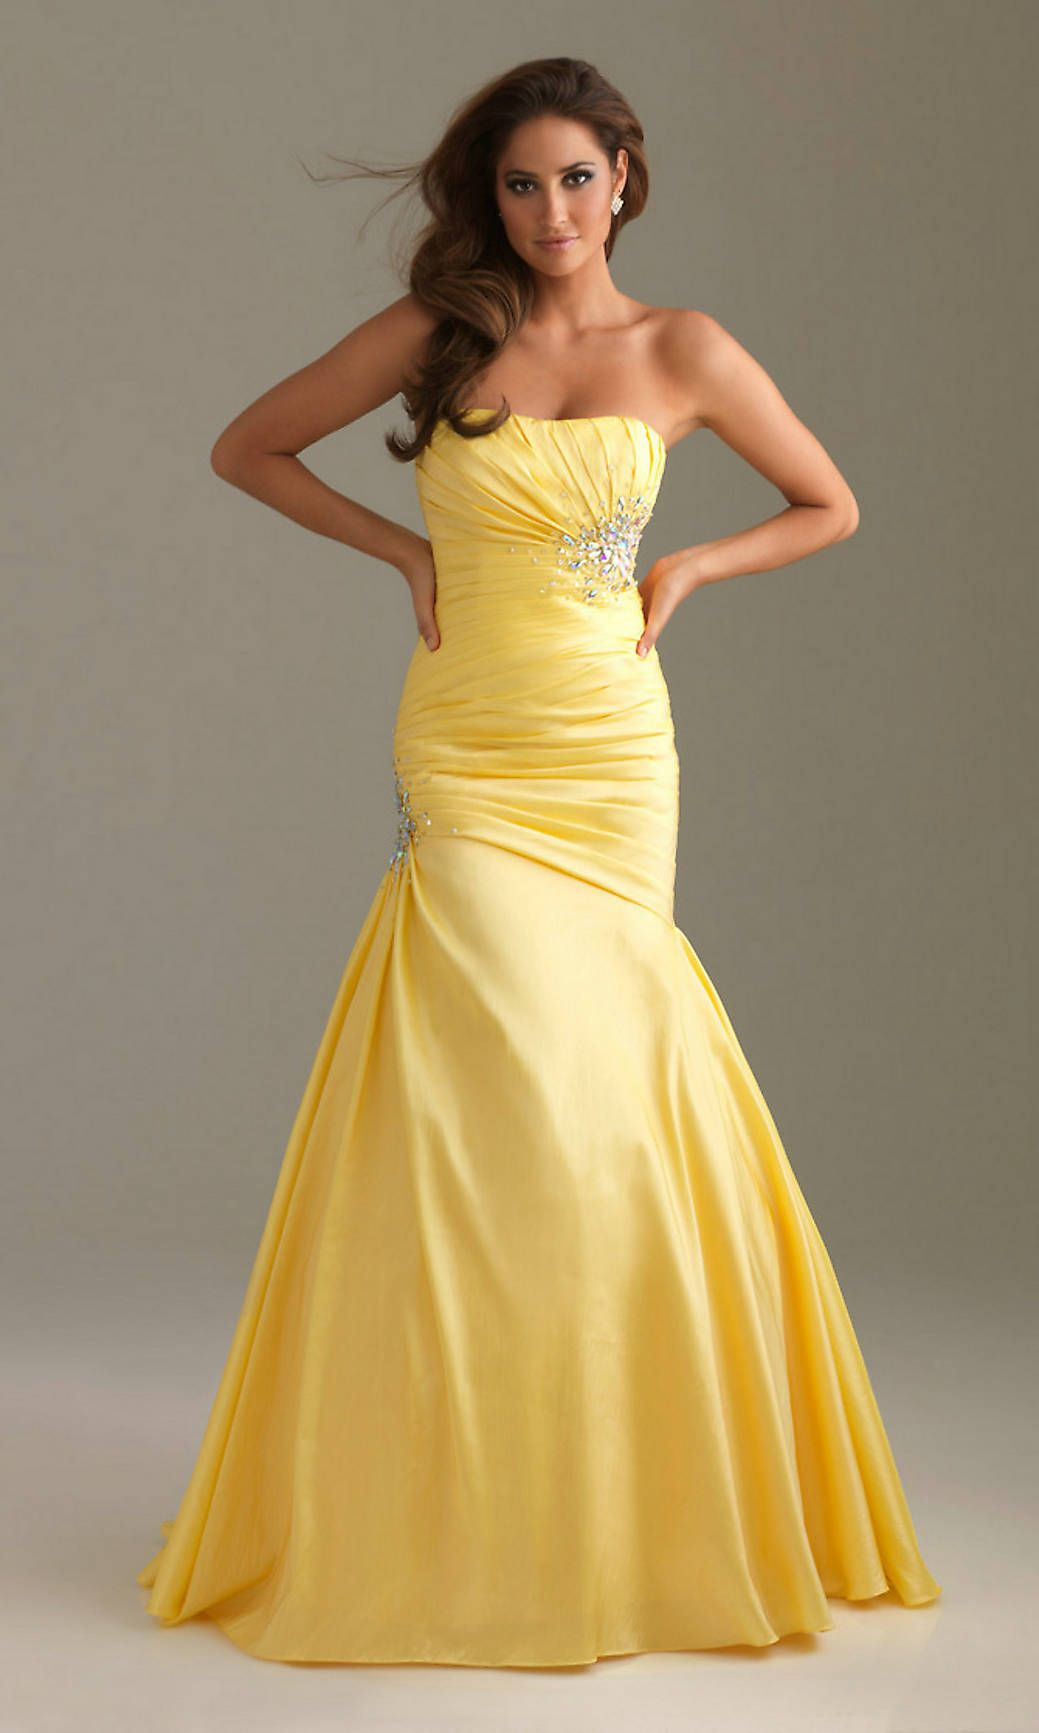 Long yellow graduation dresses | Good style dresses | Pinterest ...